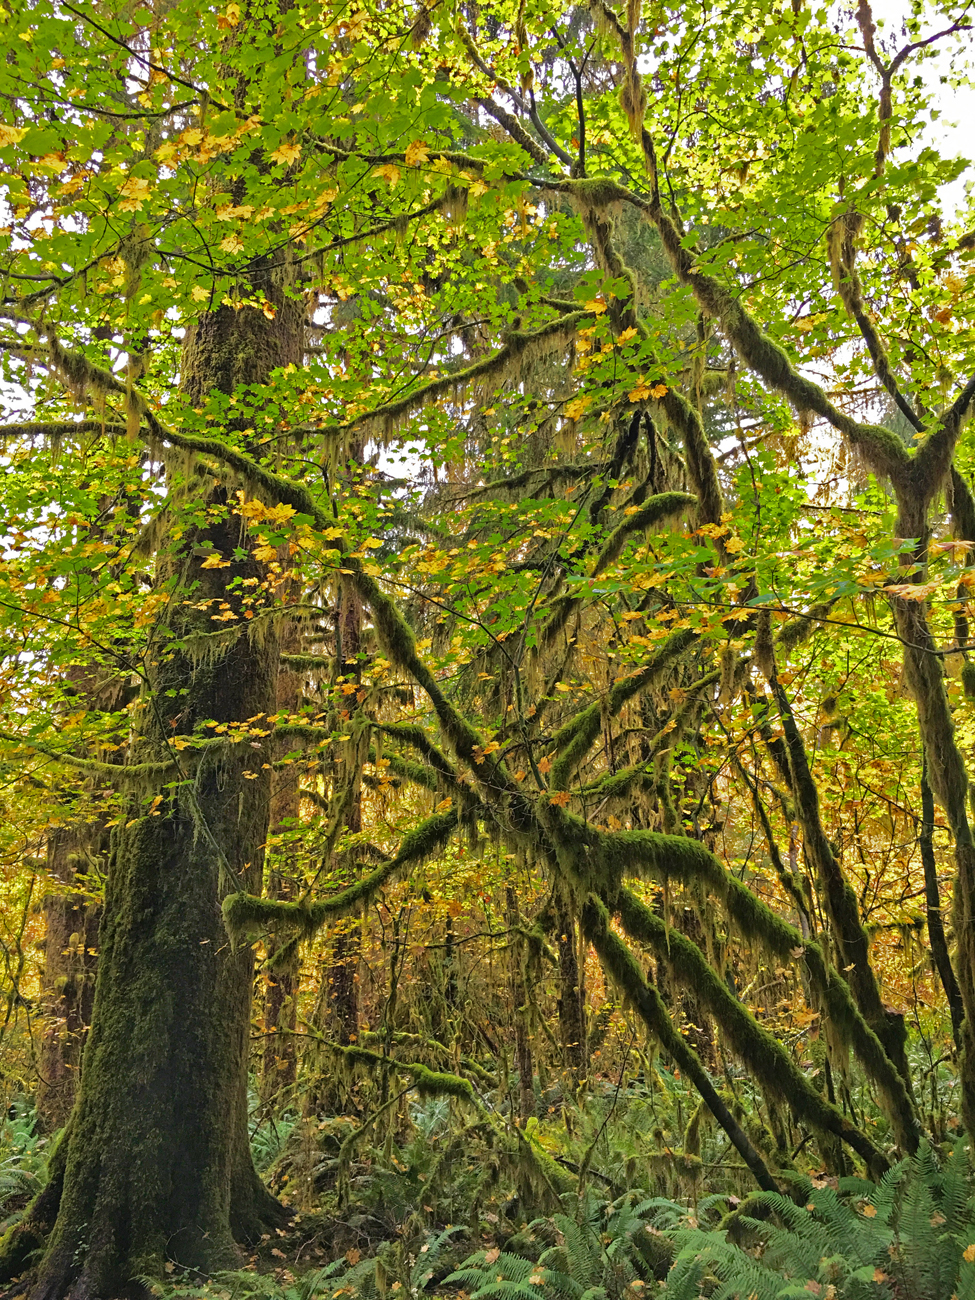 More moss-covered trees with bright green leaves in the Hoh